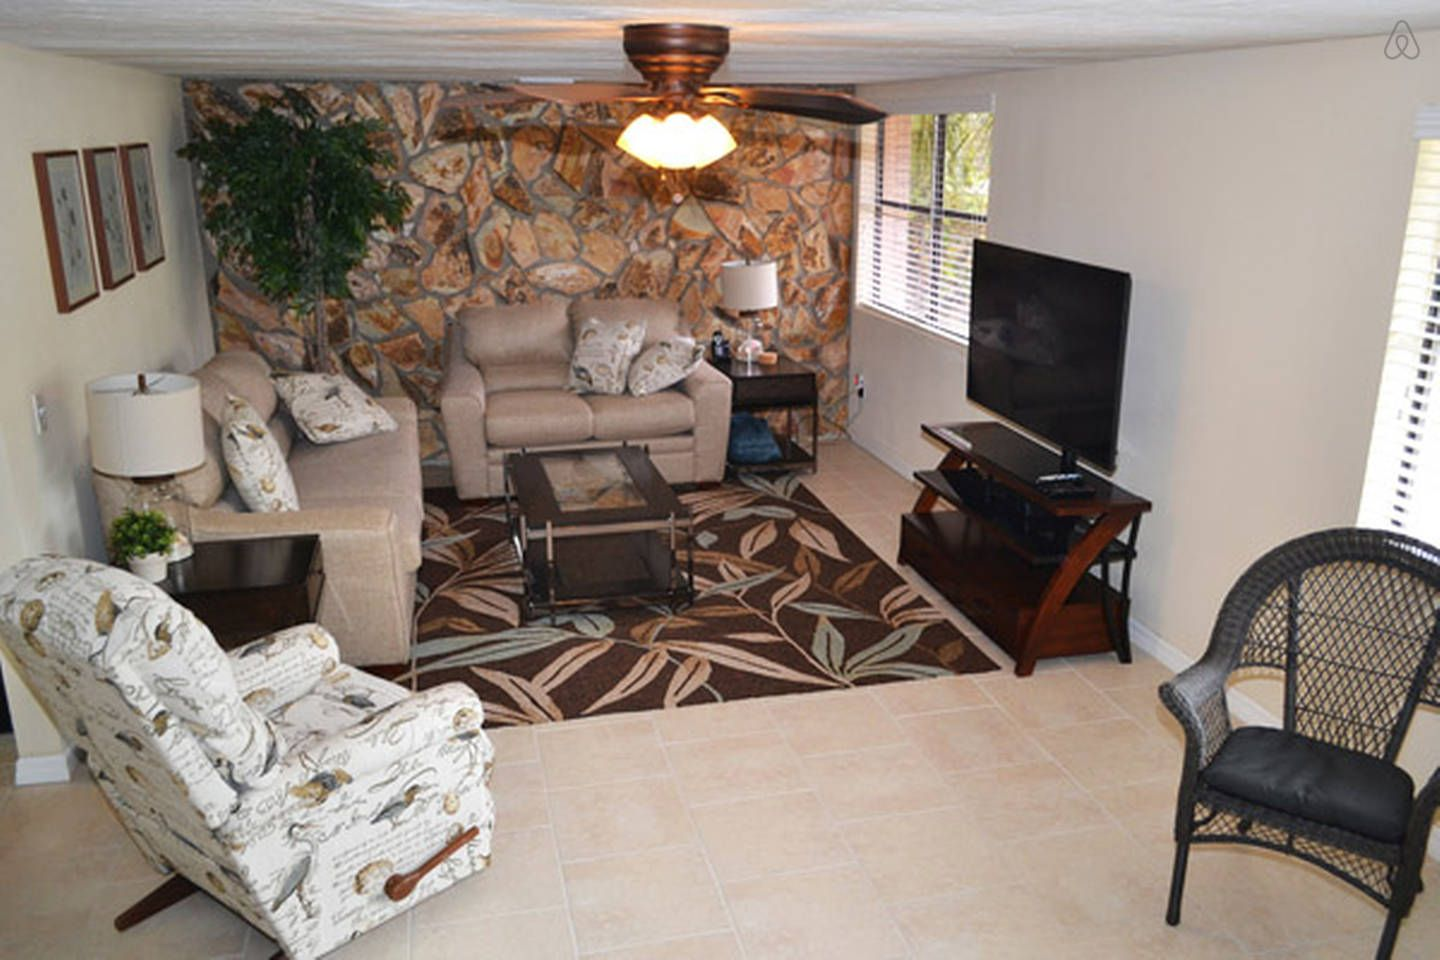 Keys to view more living rooms - Beautiful House Minutes To Beach Vacation Rental In Siesta Key Florida View More